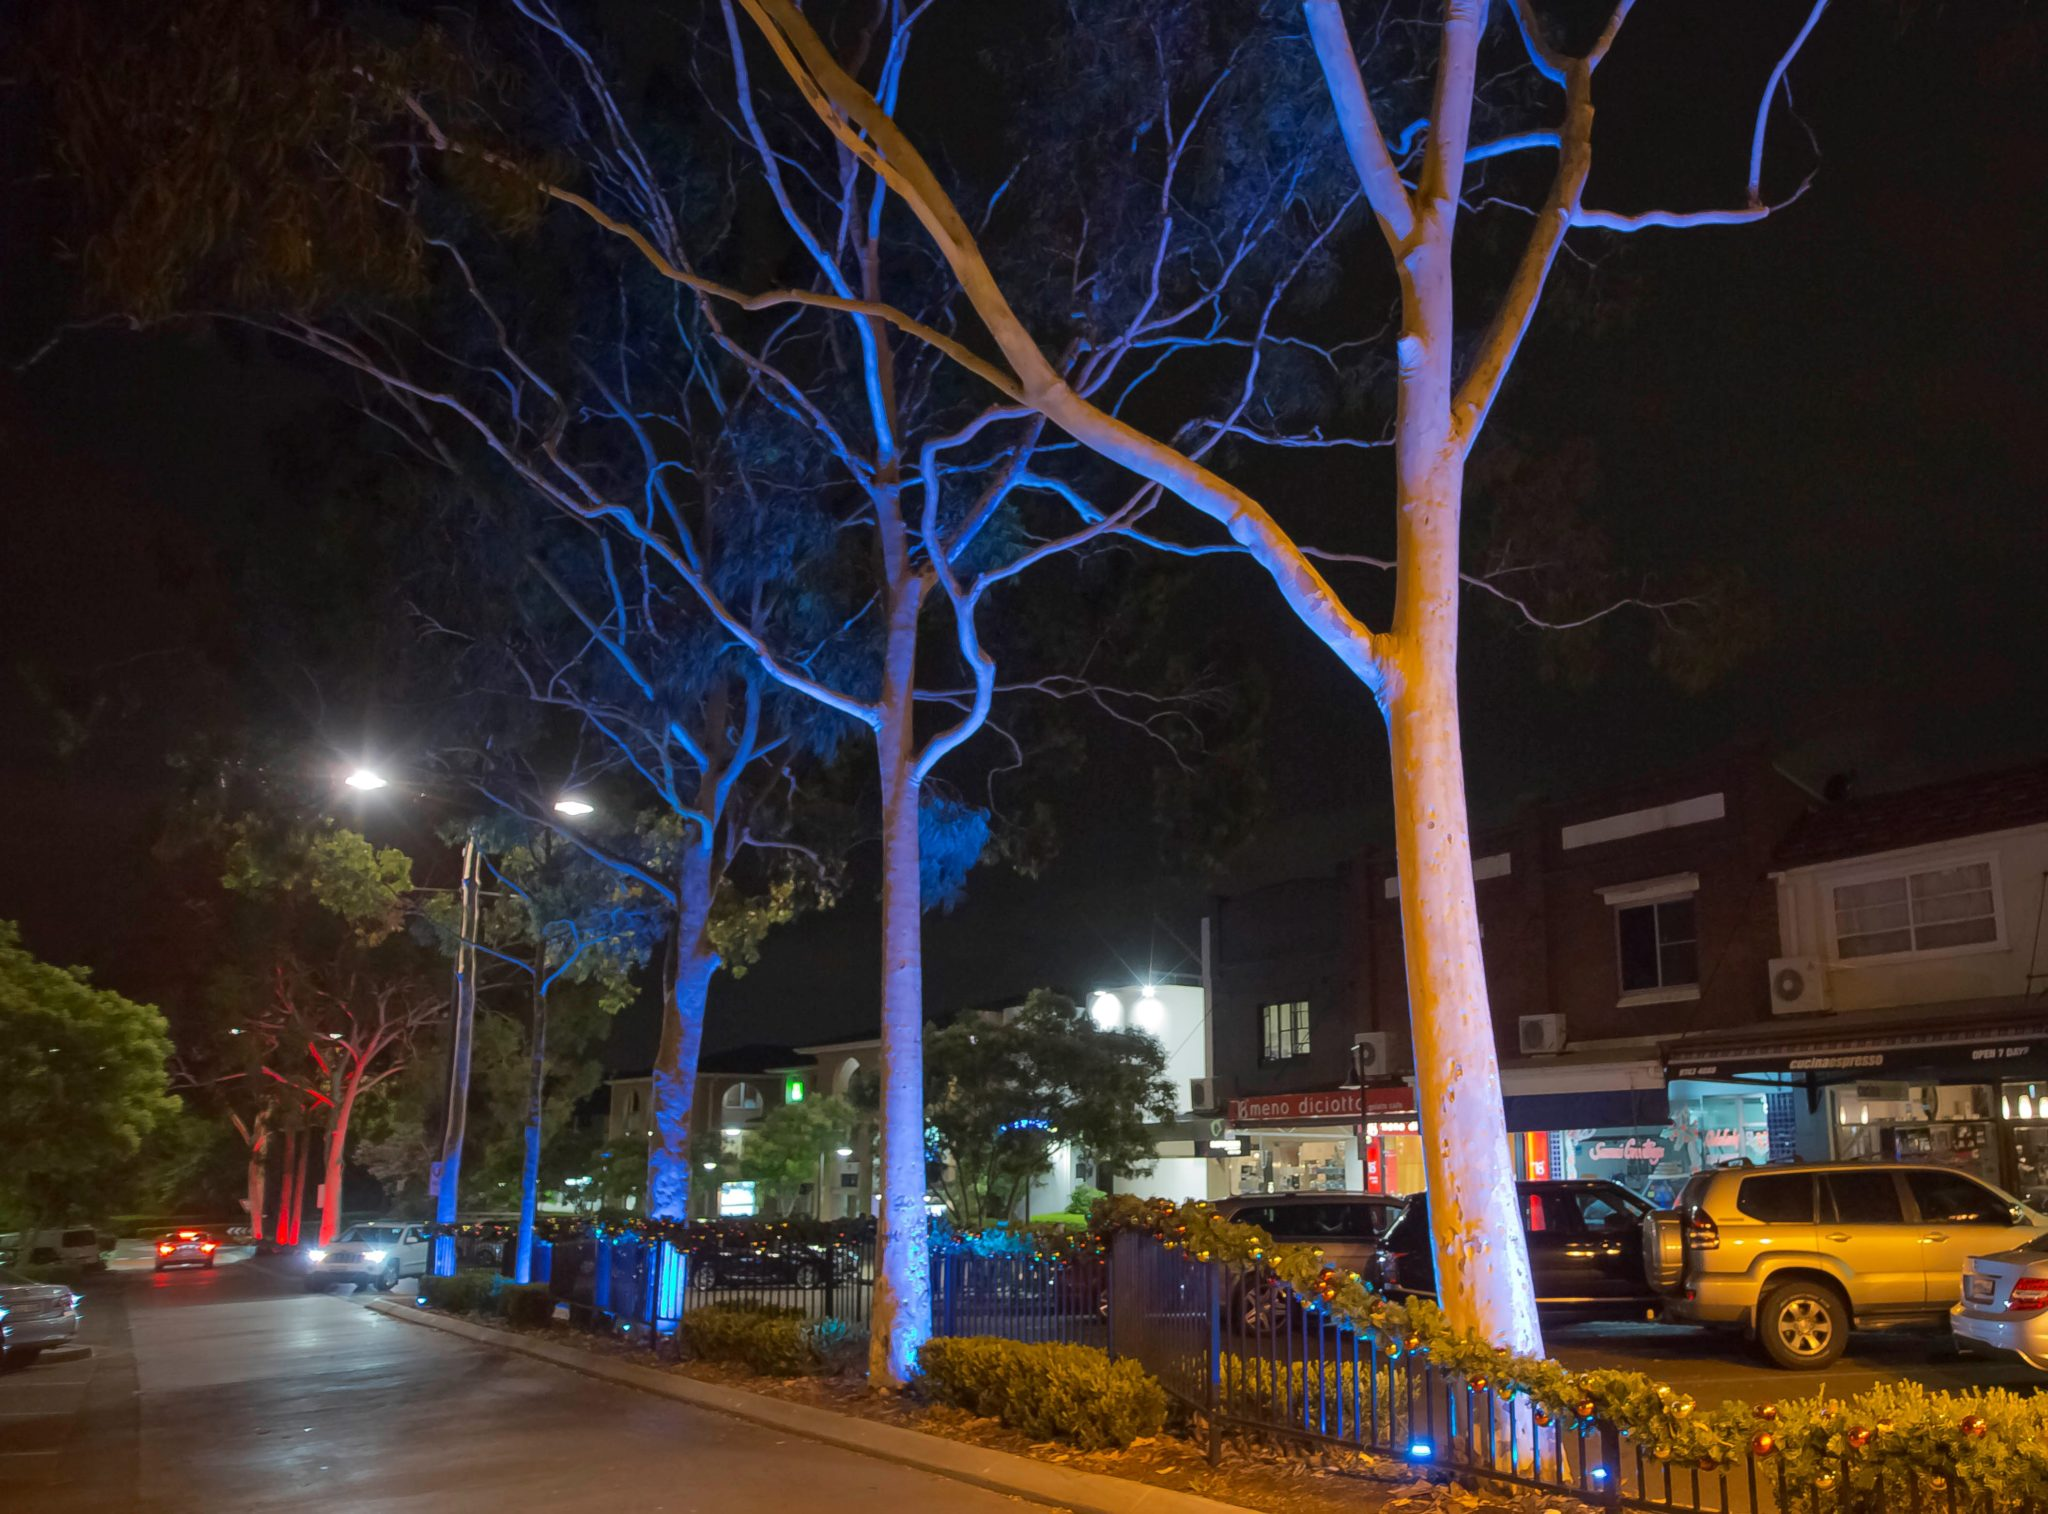 Coloured light display at Majors Bay Road by Limelight Australia